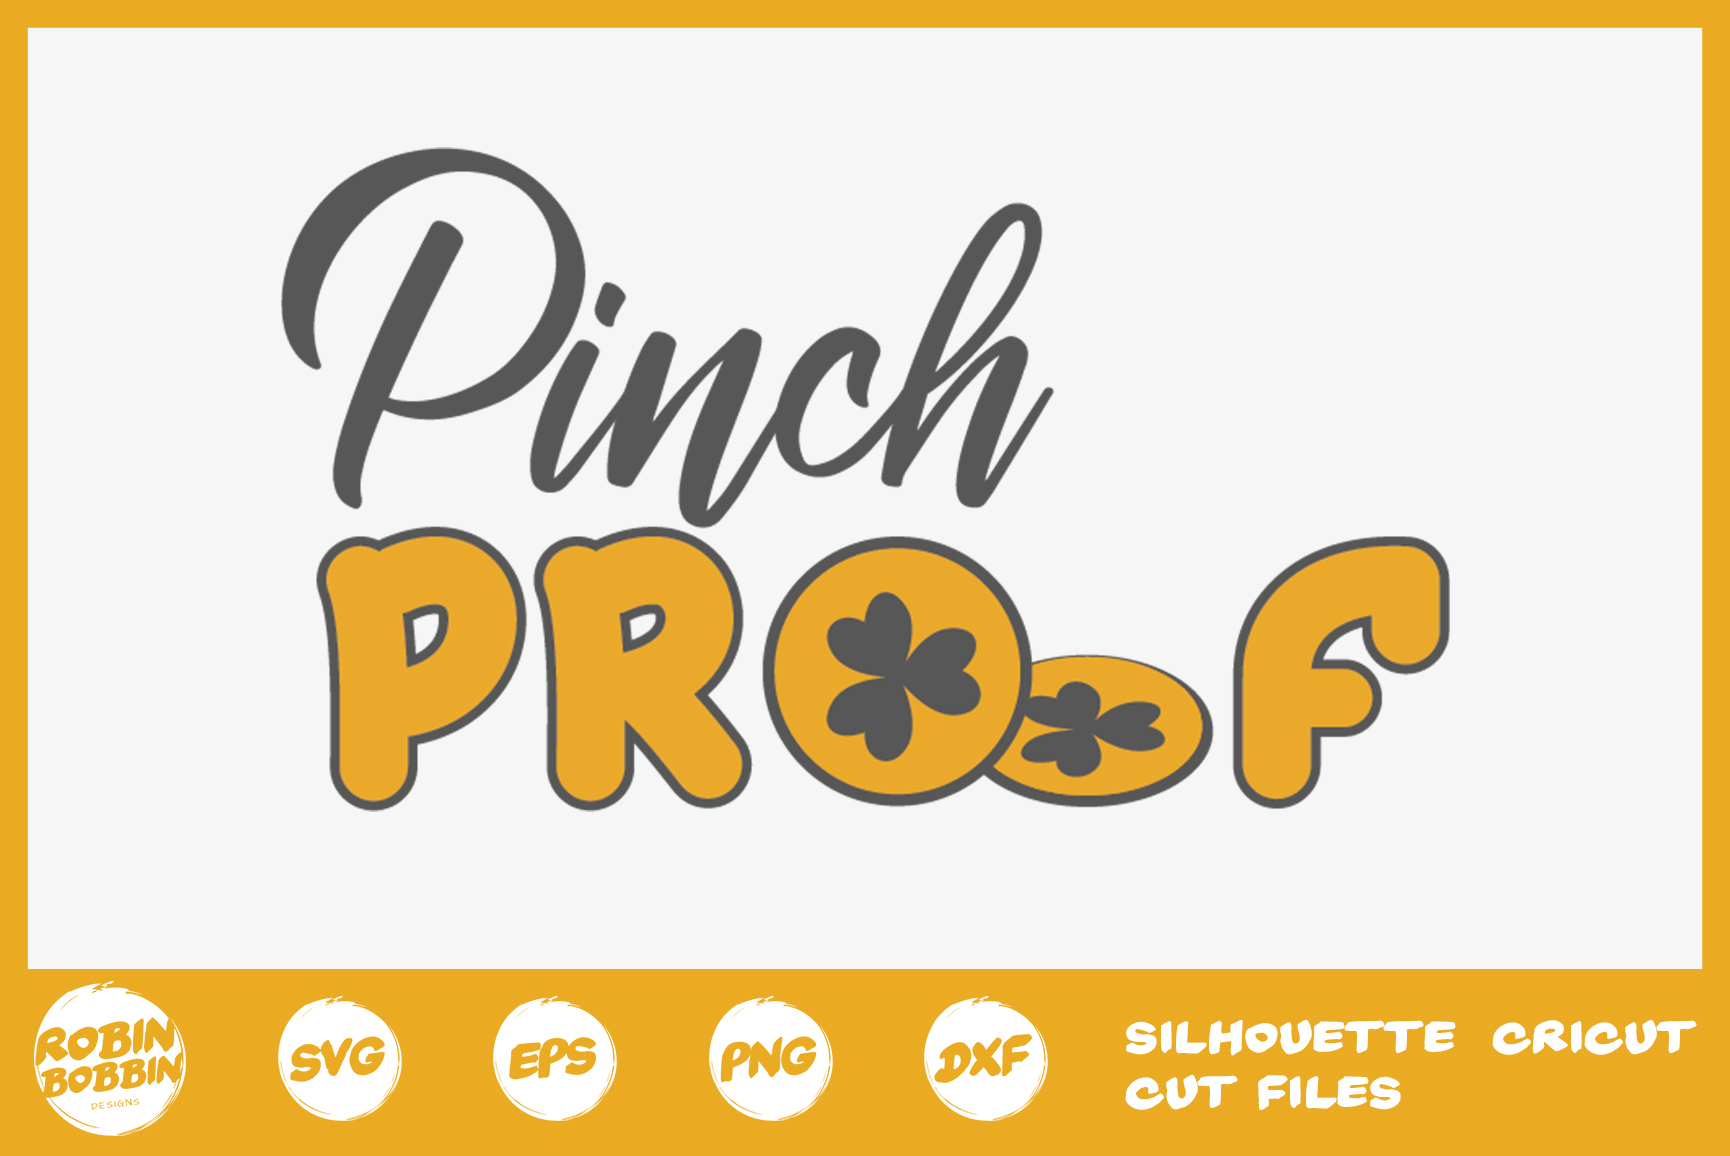 St. Patricks Day SVG, Pinch Proof SVG, Crafters SVG example image 1